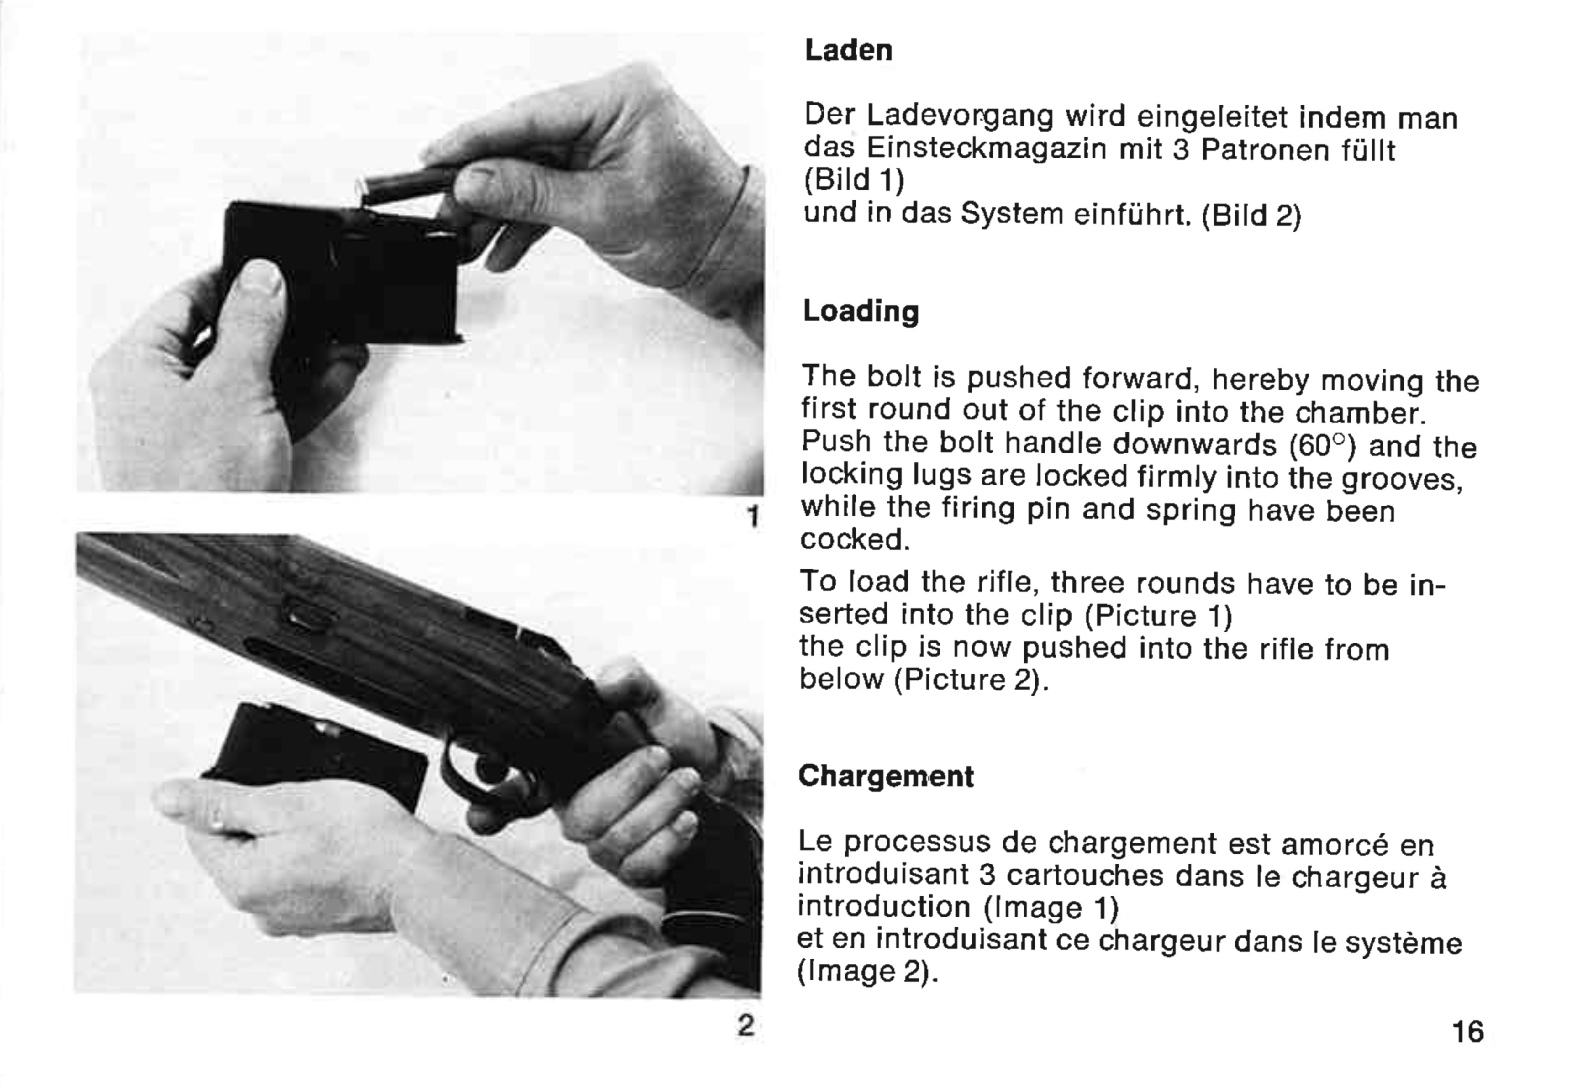 The magazine was loaded with it removed from the rifle. (Picture courtesy Mauser).